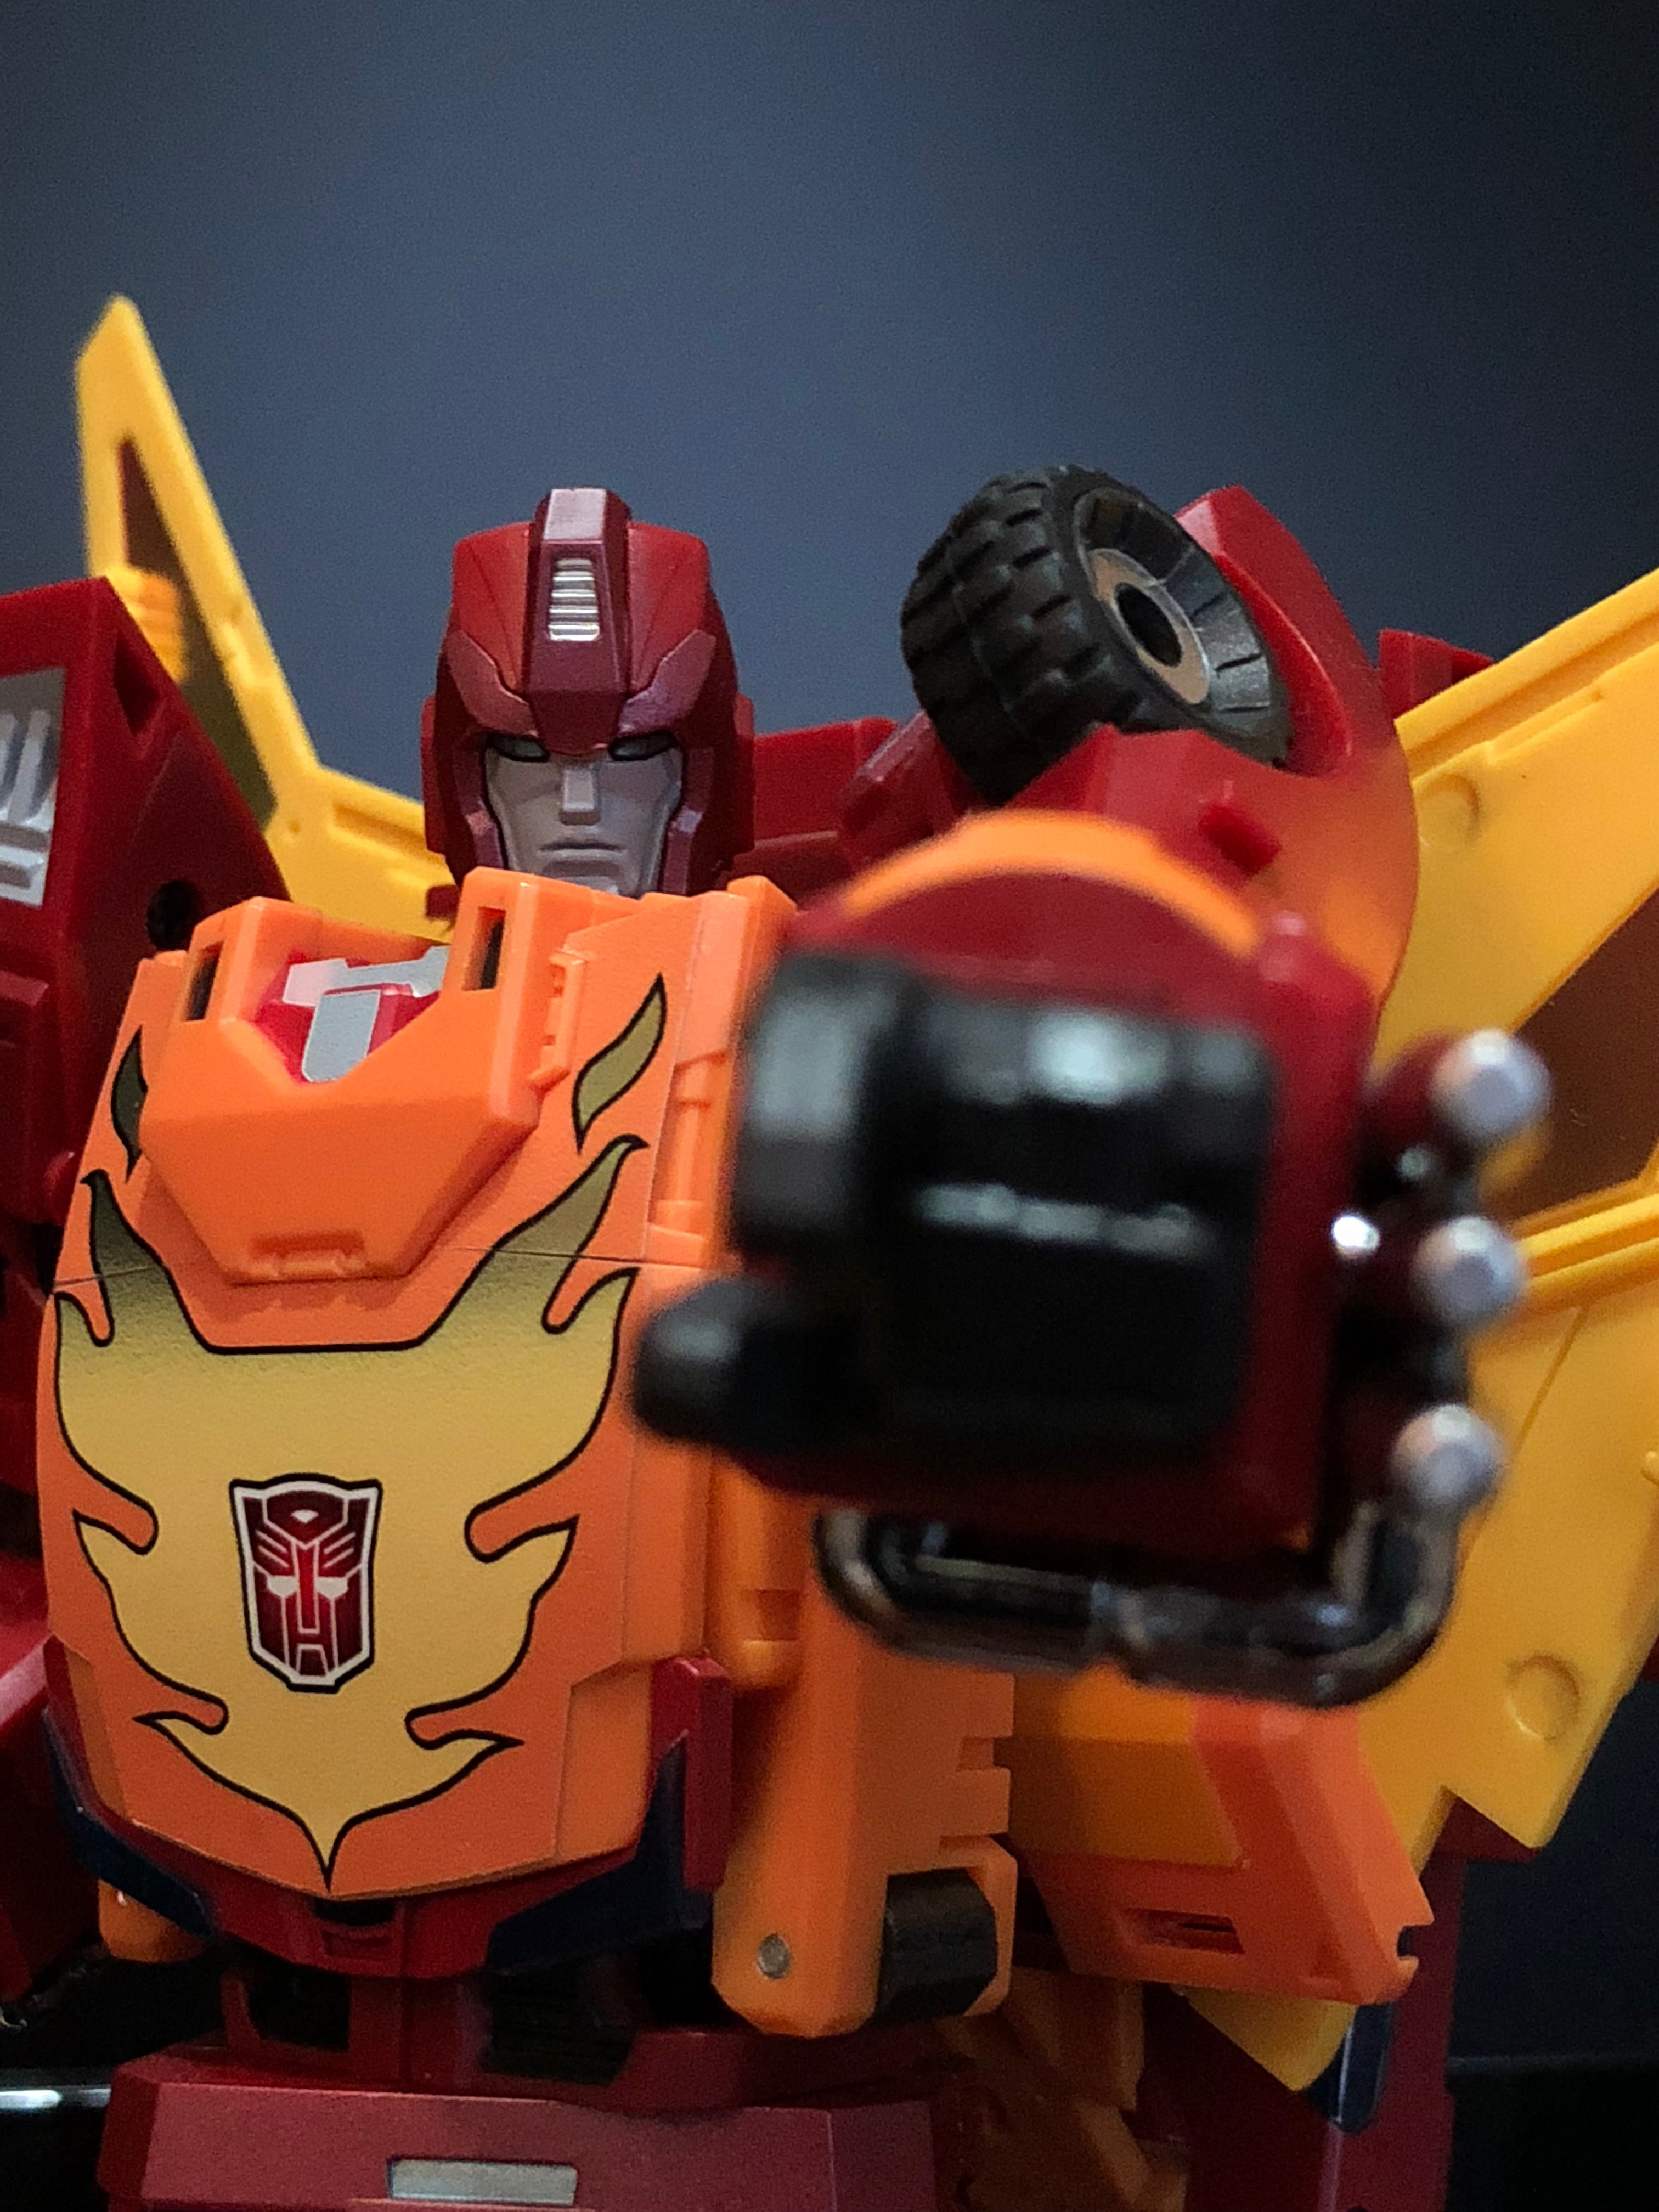 Masterpiece scale Rodimus Prime in the Studio Ox style, aka DX9 Carry